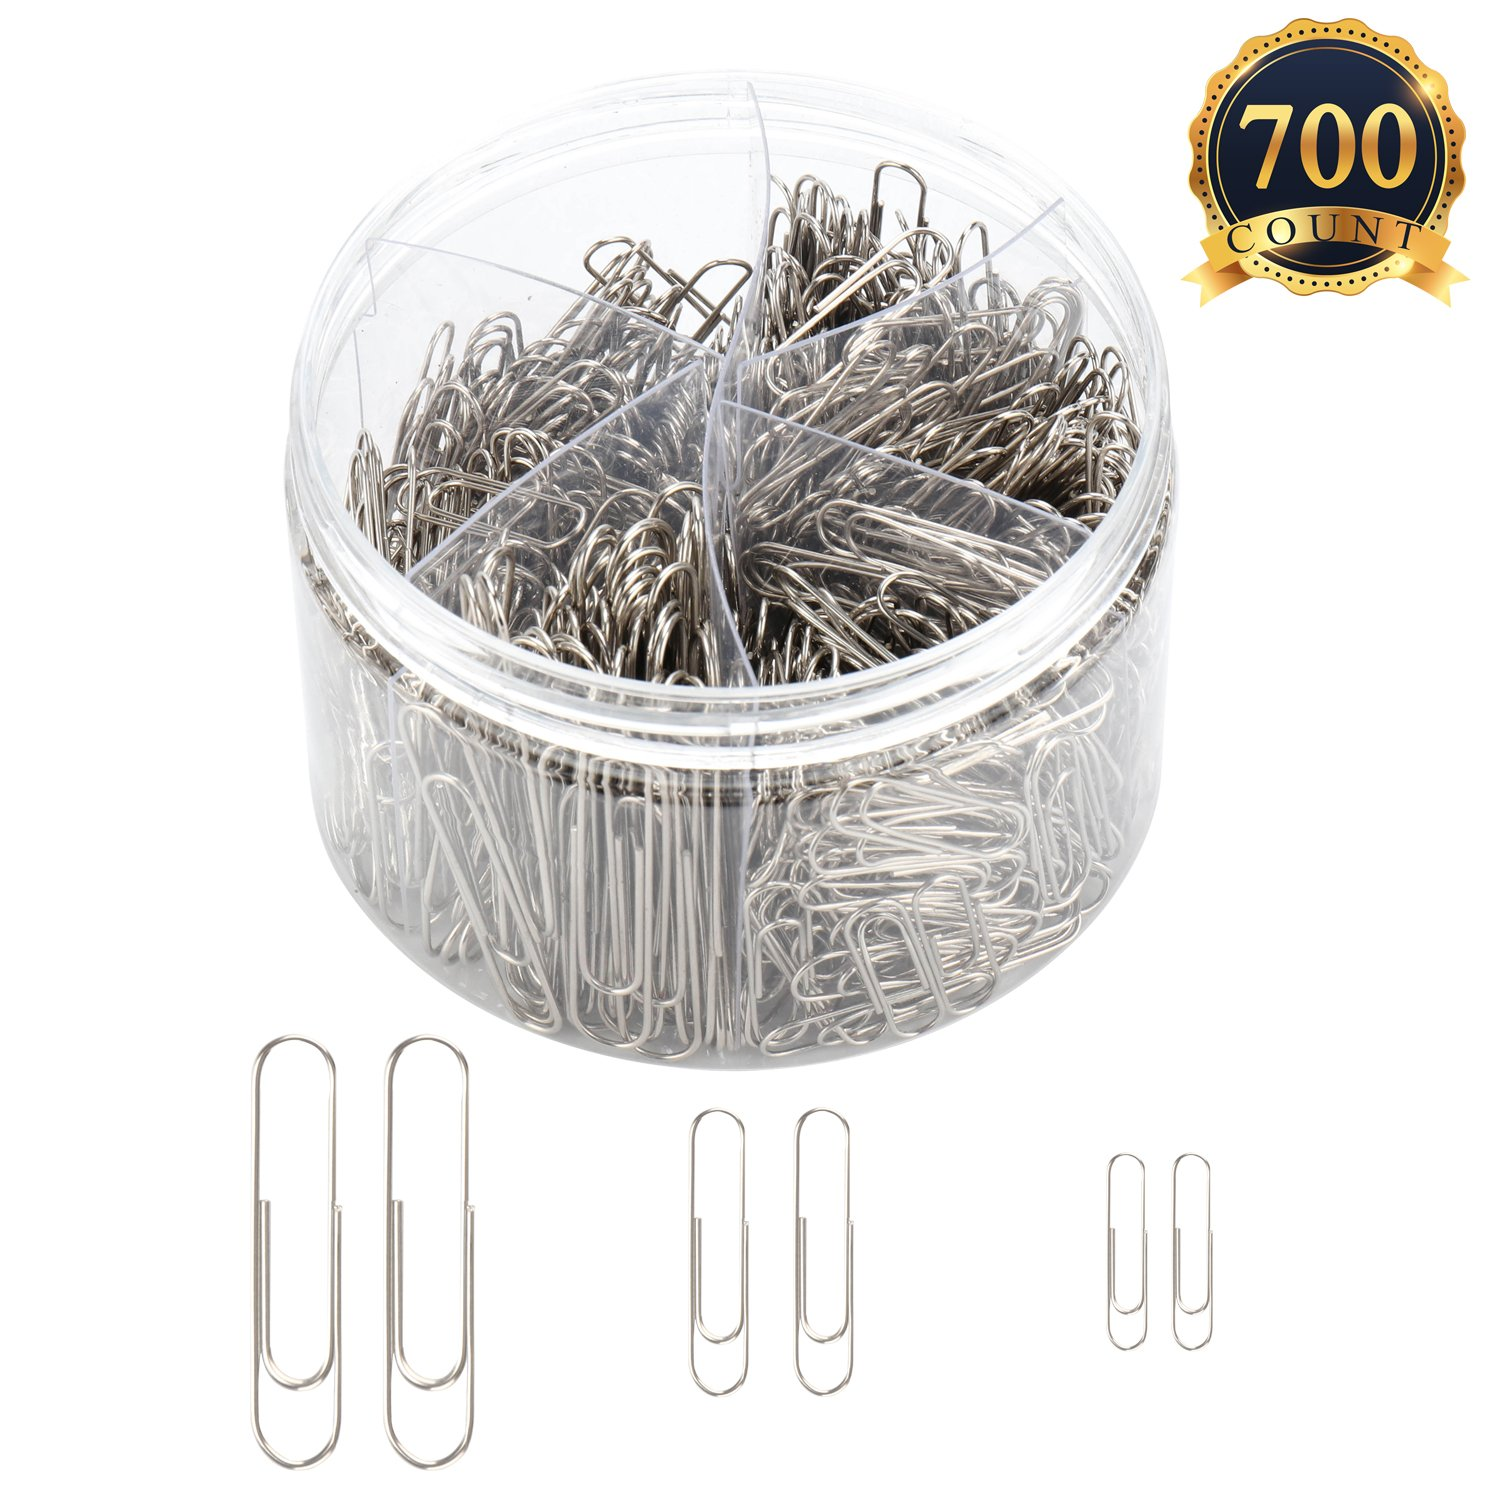 SUBANG 700 Pieces Sliver Paper clips, Medium 28mm 33mm and Jumbo Sizes 50mm, Office Clips for School Personal Document Organizing Professional Work